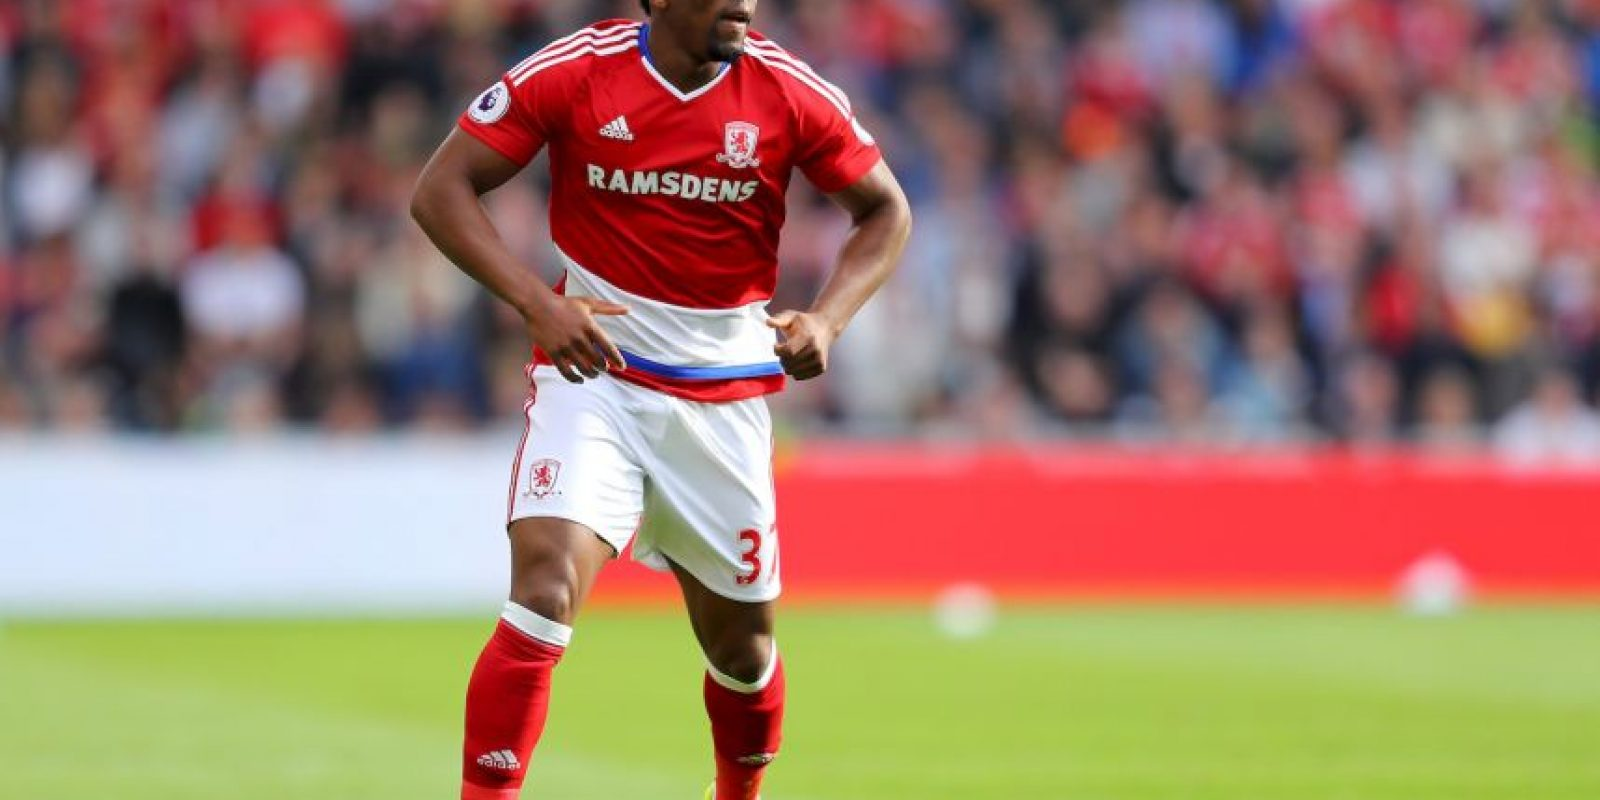 7.Adama Traore (Middlesbrough) – 34.84 km/h Foto: Getty images